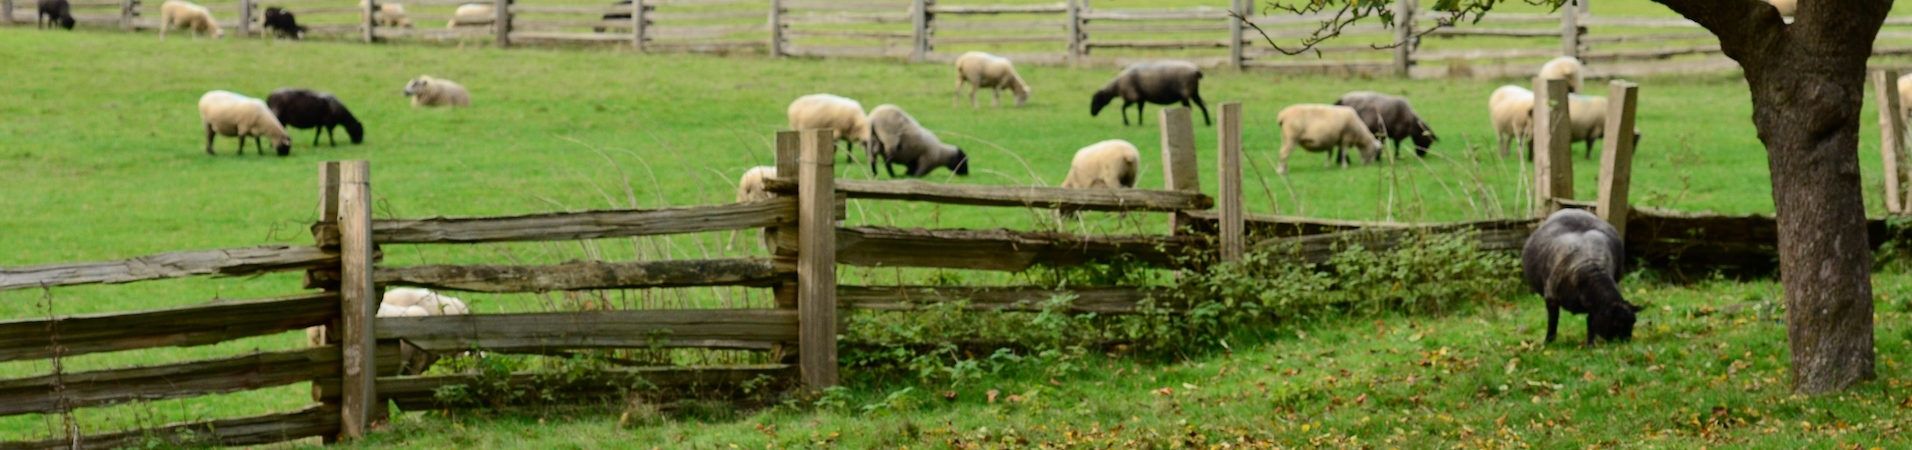 sheep grazing in a green field surrounded by a wooden fence